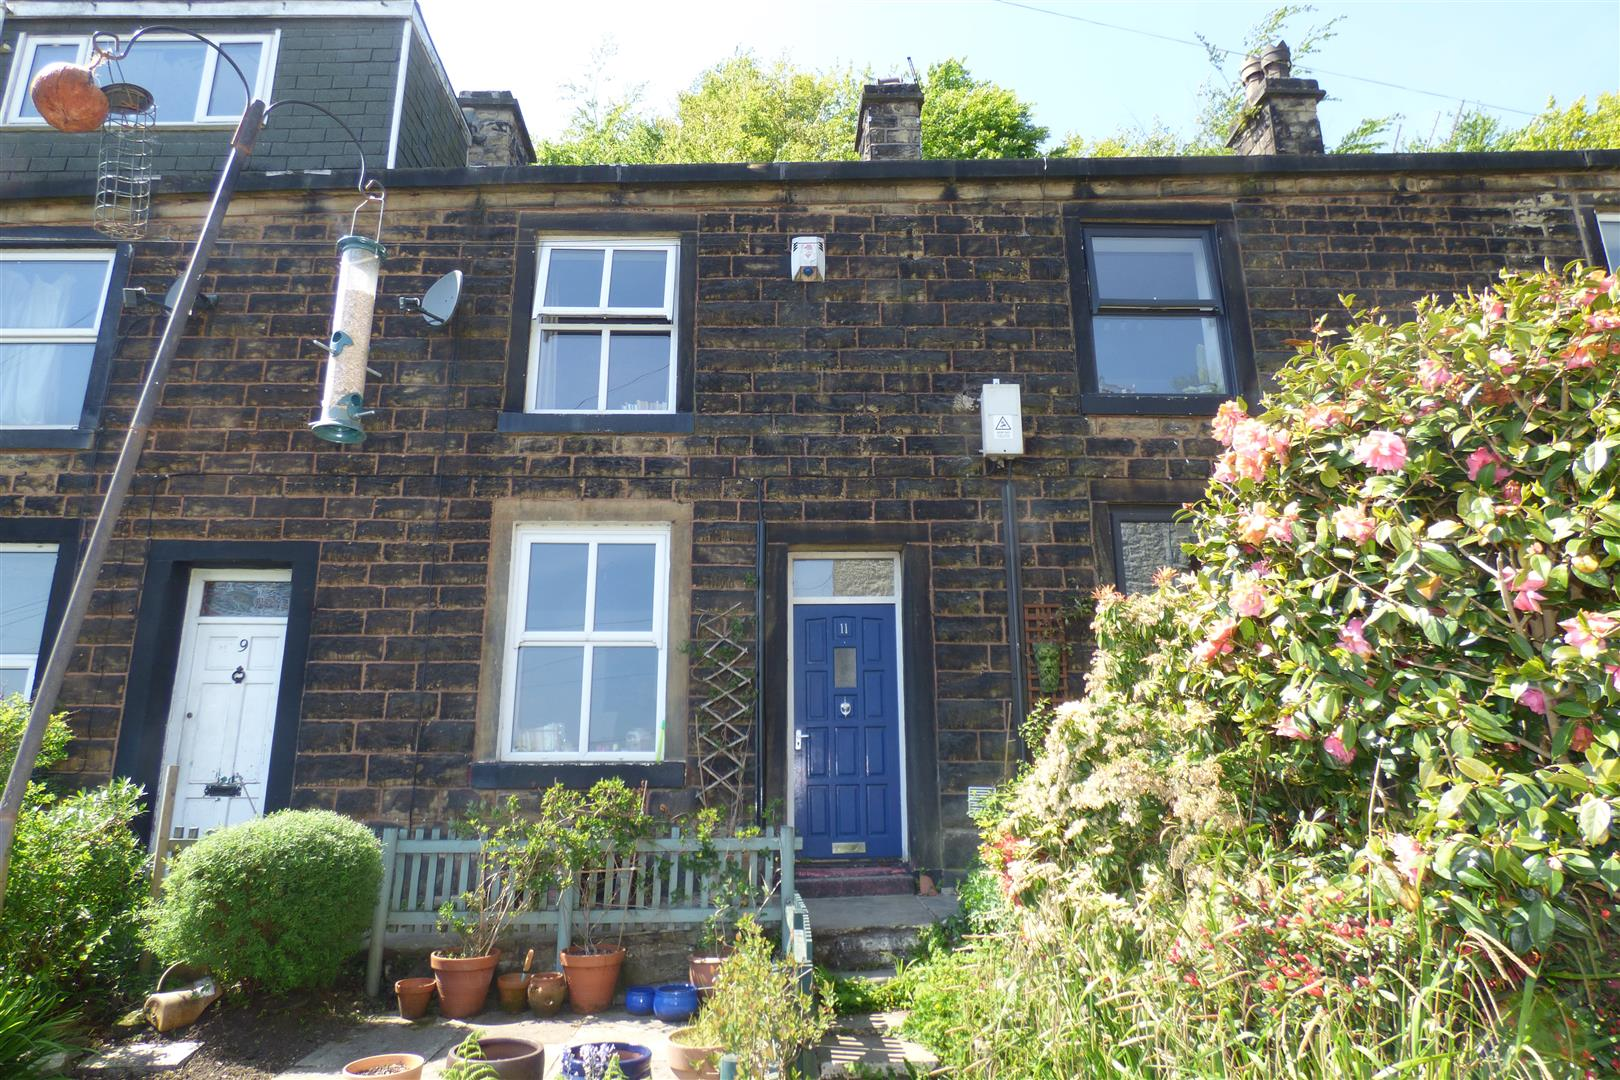 11 Coulthurst Street, Ramsbottom, Bury